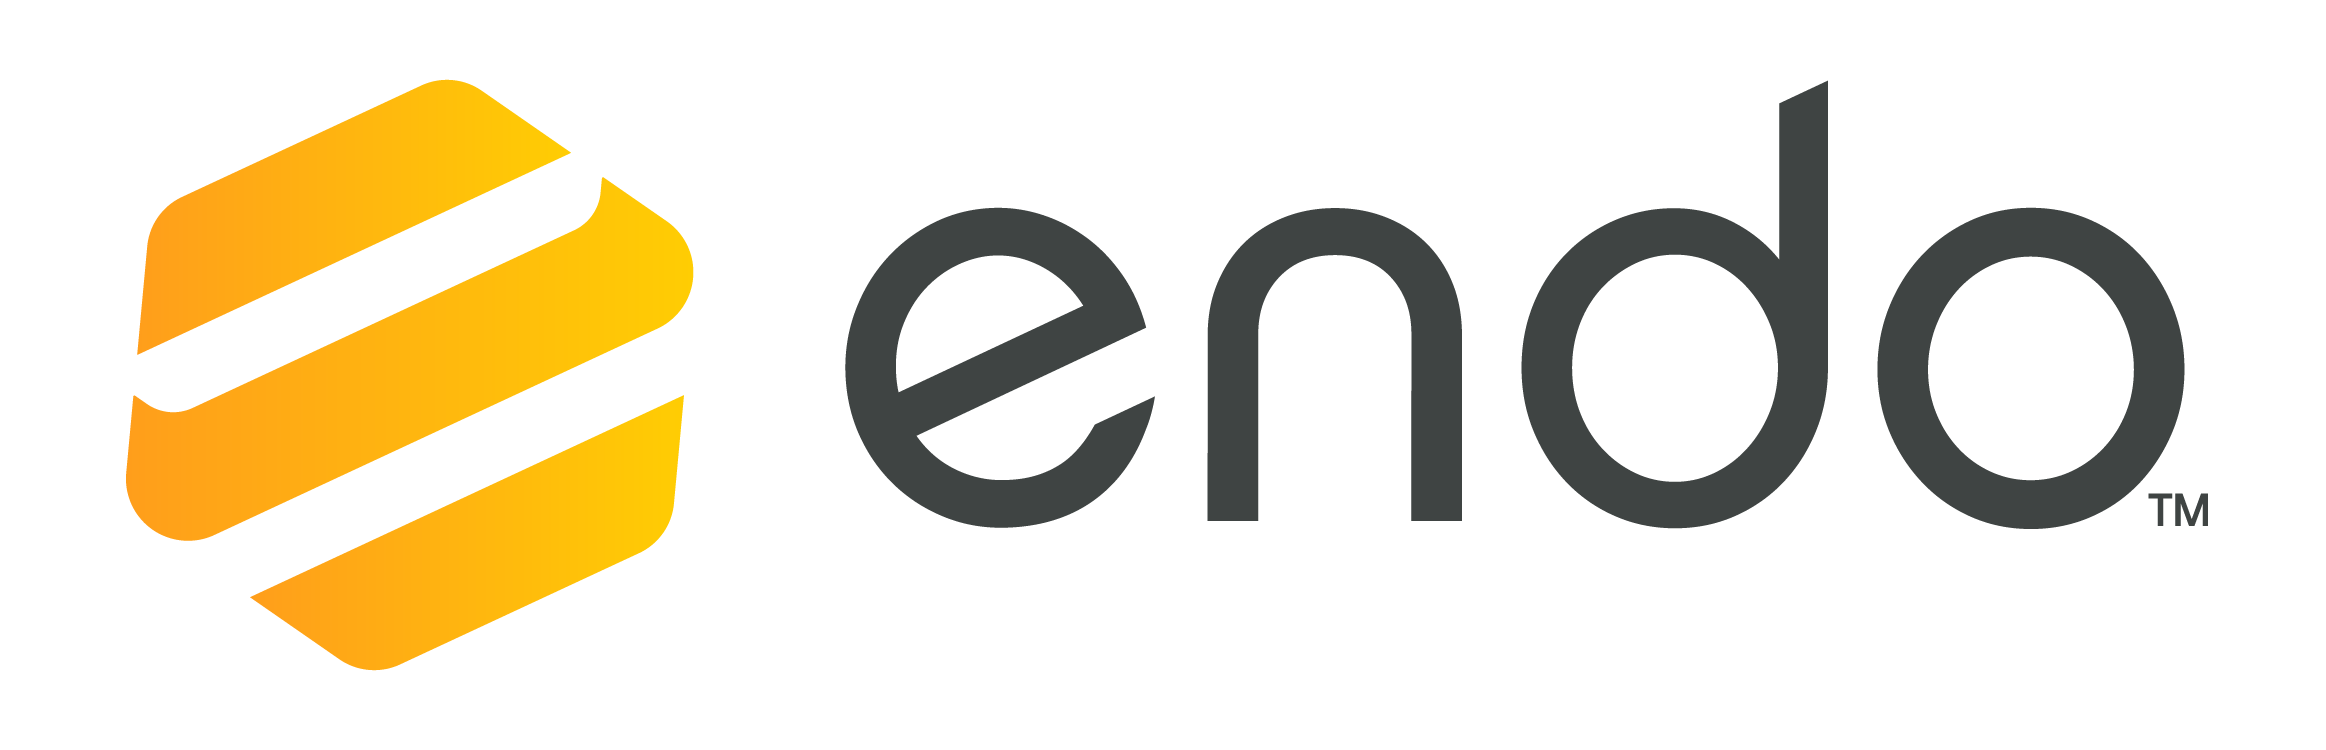 Endo Pharmaceuticals logo, an endo international company